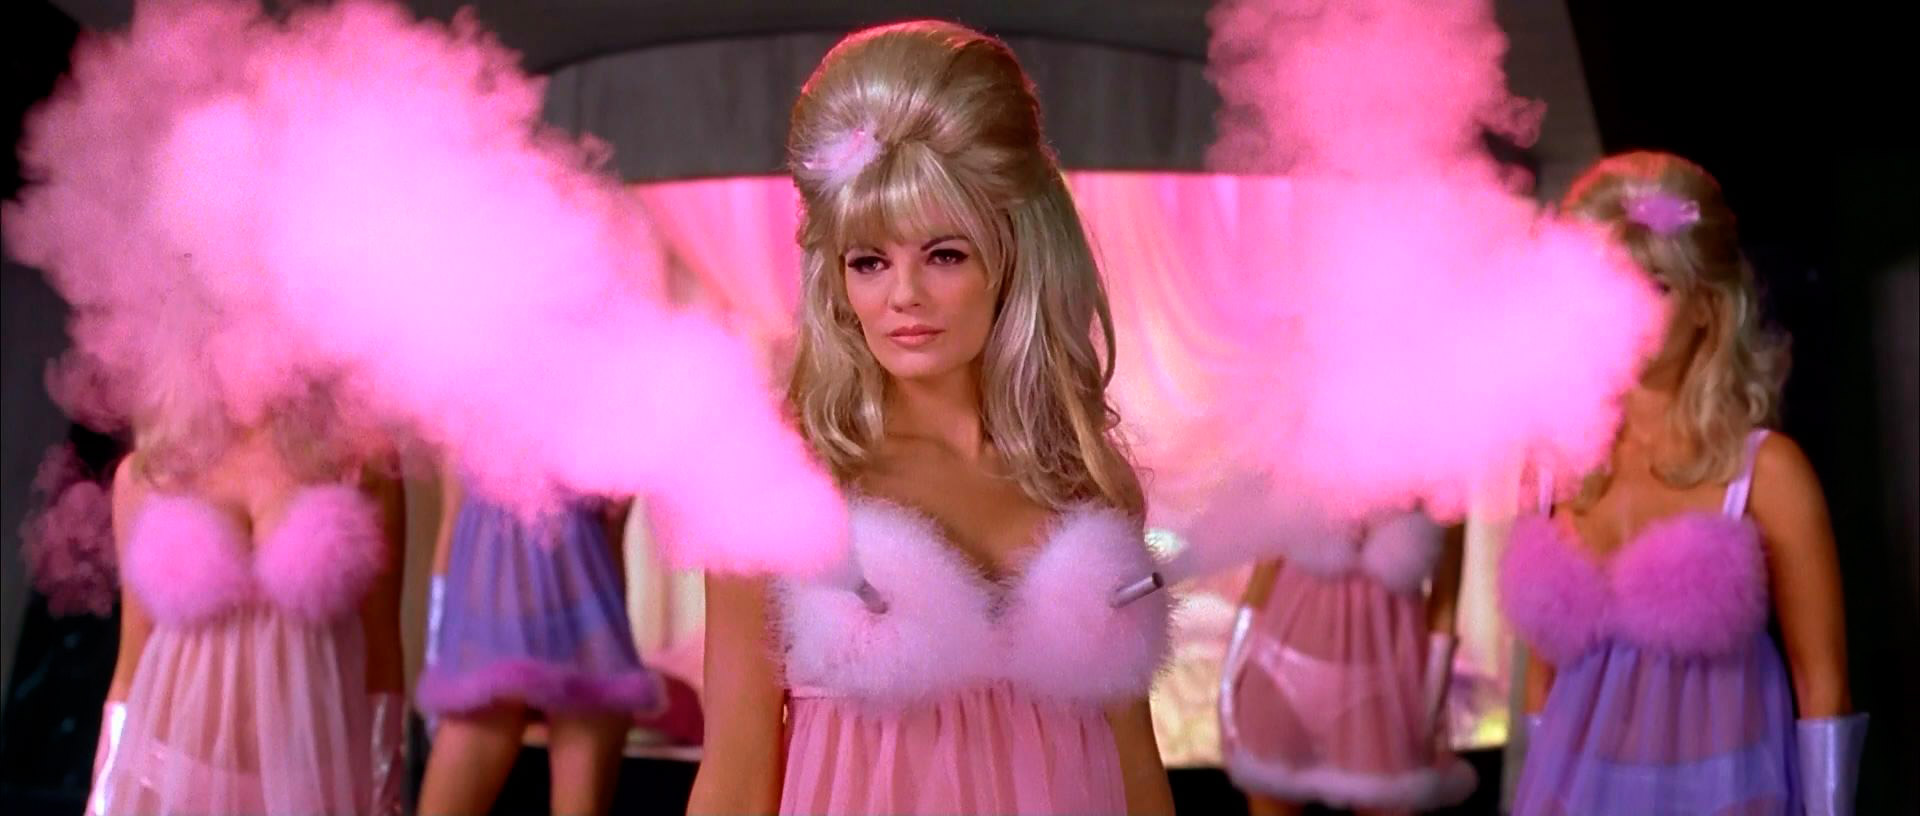 Fembots à gros calibre dans le film Austin Powers : International Man of Mystery de Jay Roach (1997)